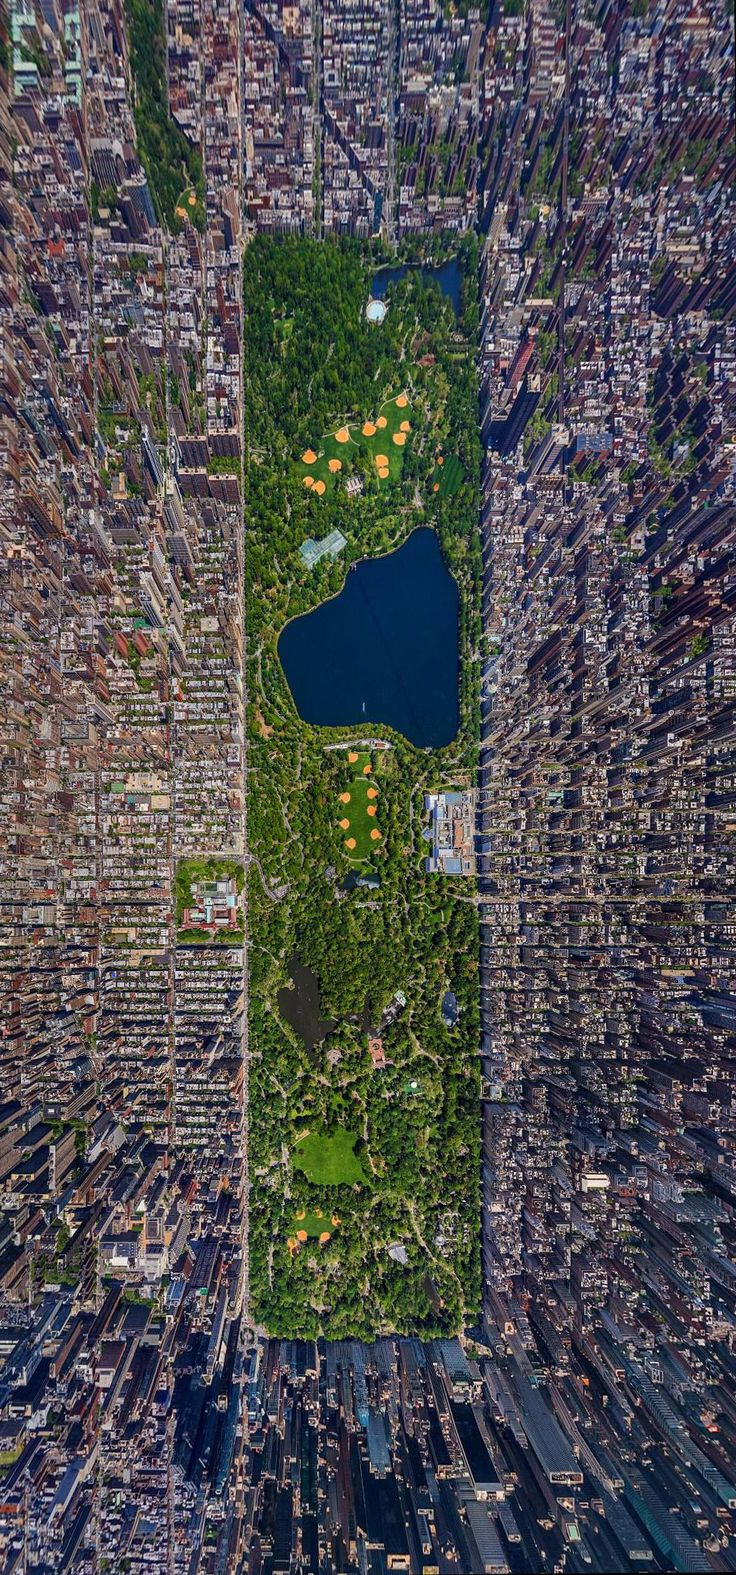 This birds eye view of NYC is very interesting. The green in the middle is a good focus point and it's so cool to be able to see a lot of the city